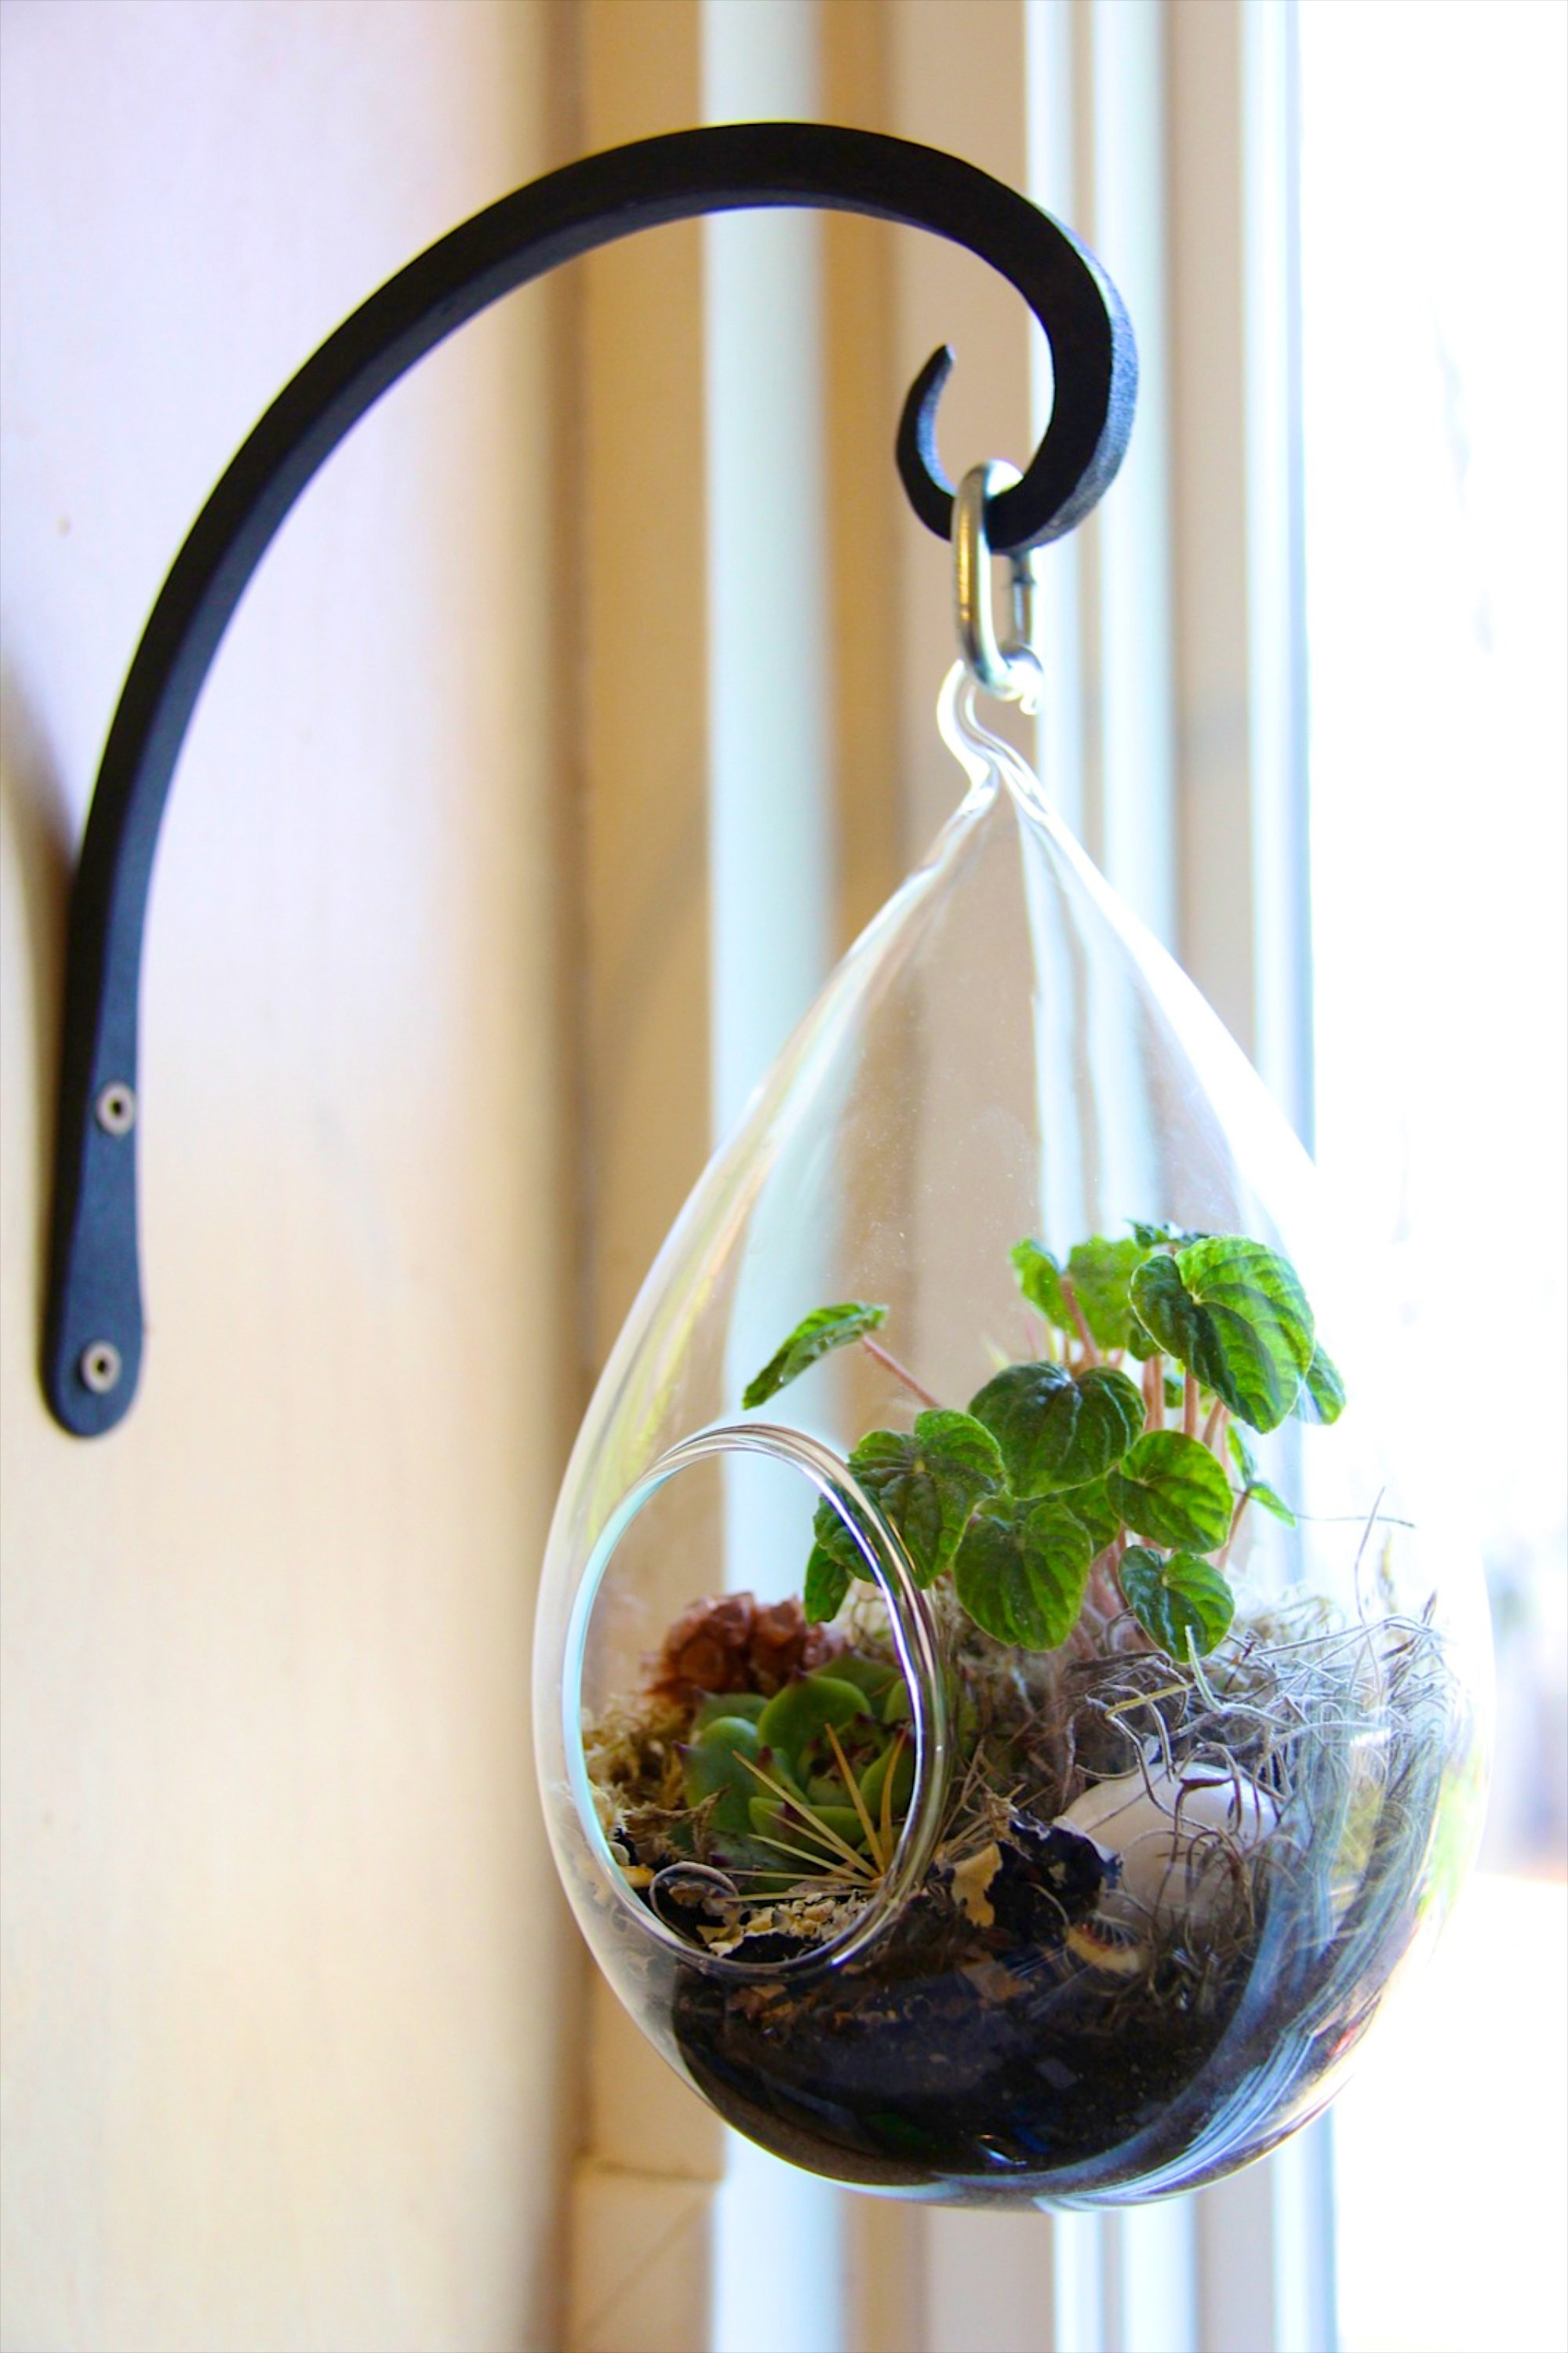 Watering Can Vase Metal Of How to Make A Terrarium 7 Steps with Pictures Inside F3nxqh4ha4mbayk